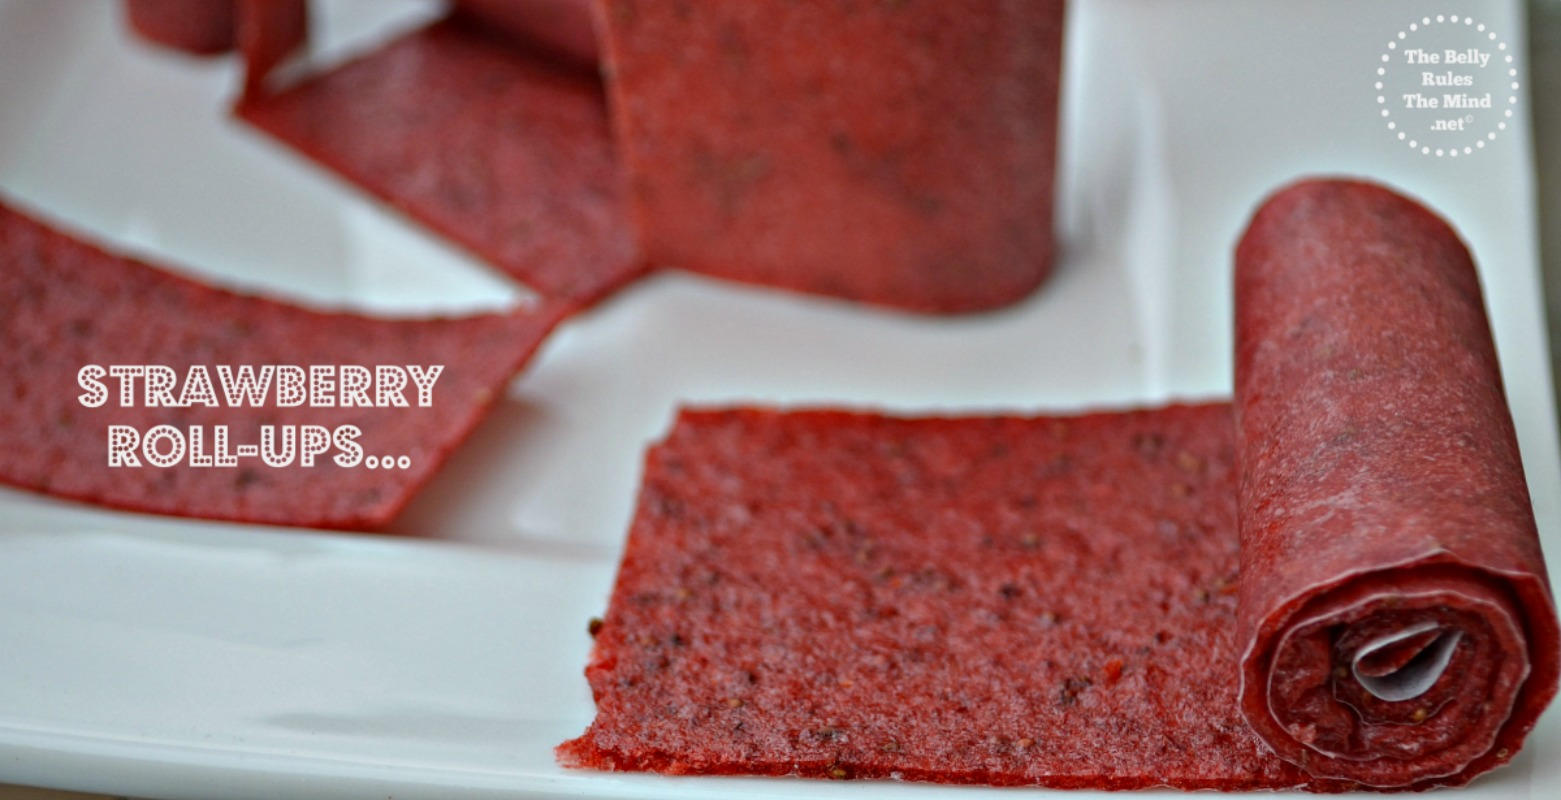 Strawberry leather or roll-ups